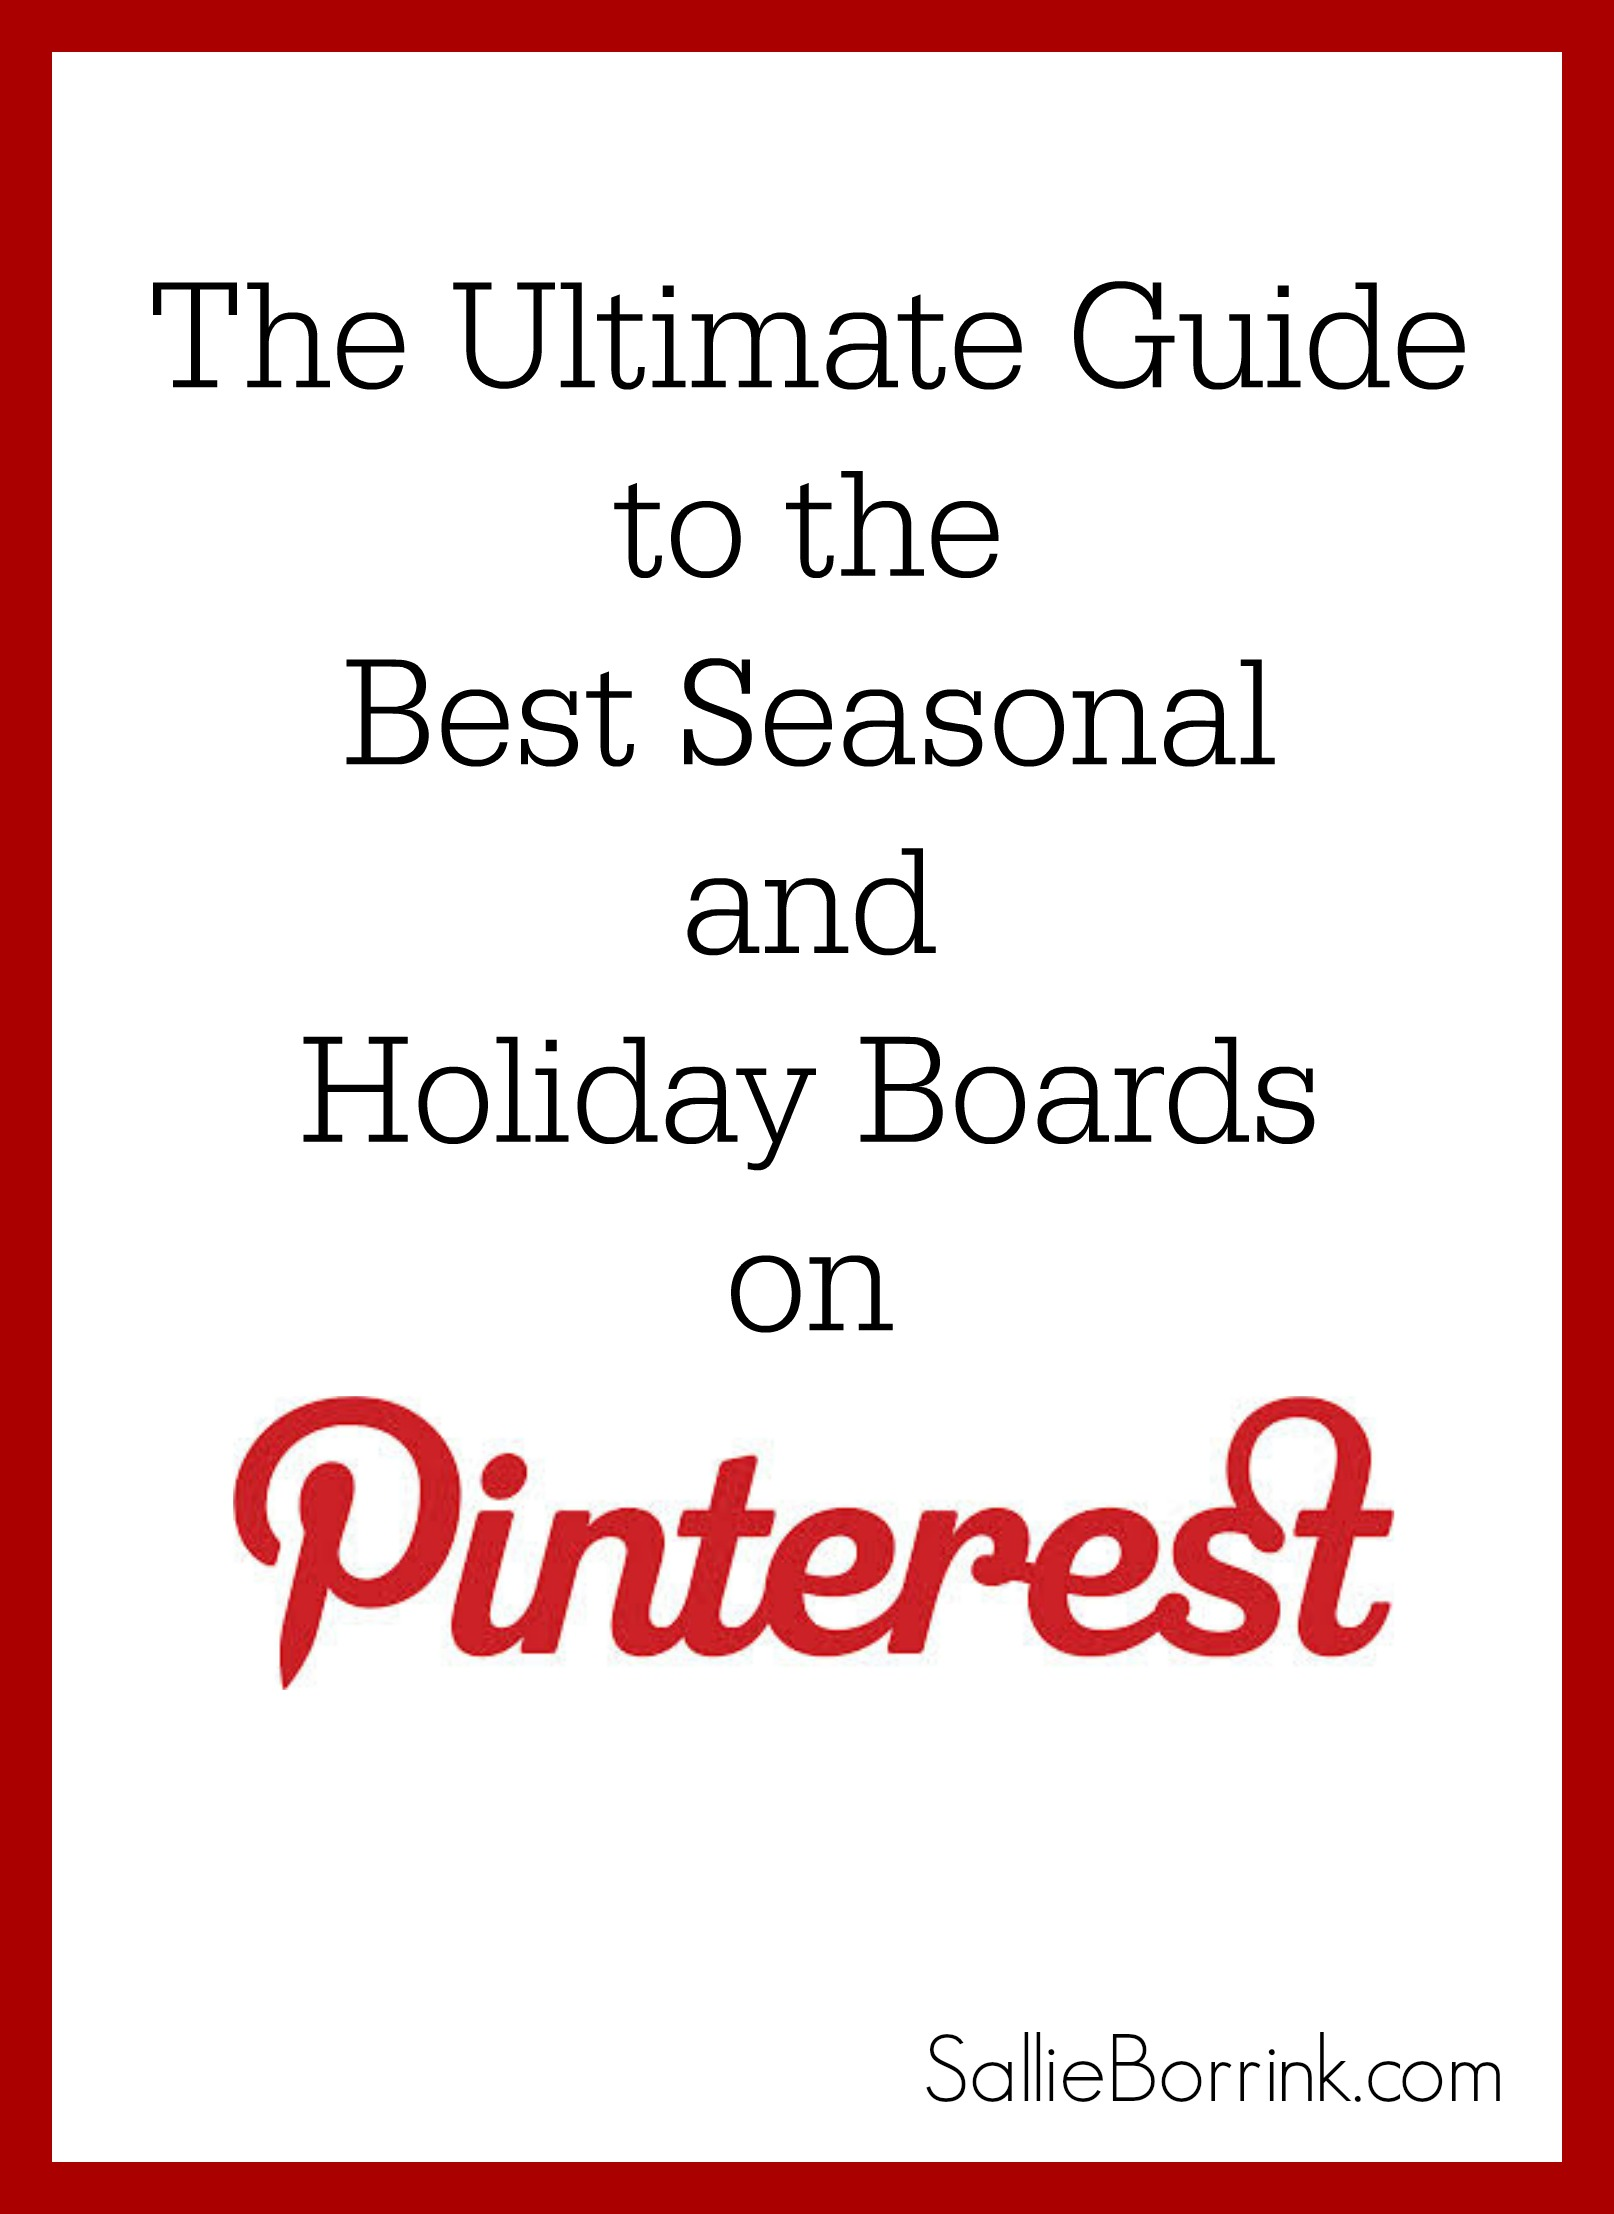 The Ultimate Guiide to the Best Seasonal and Holiday Boards on Pinterest